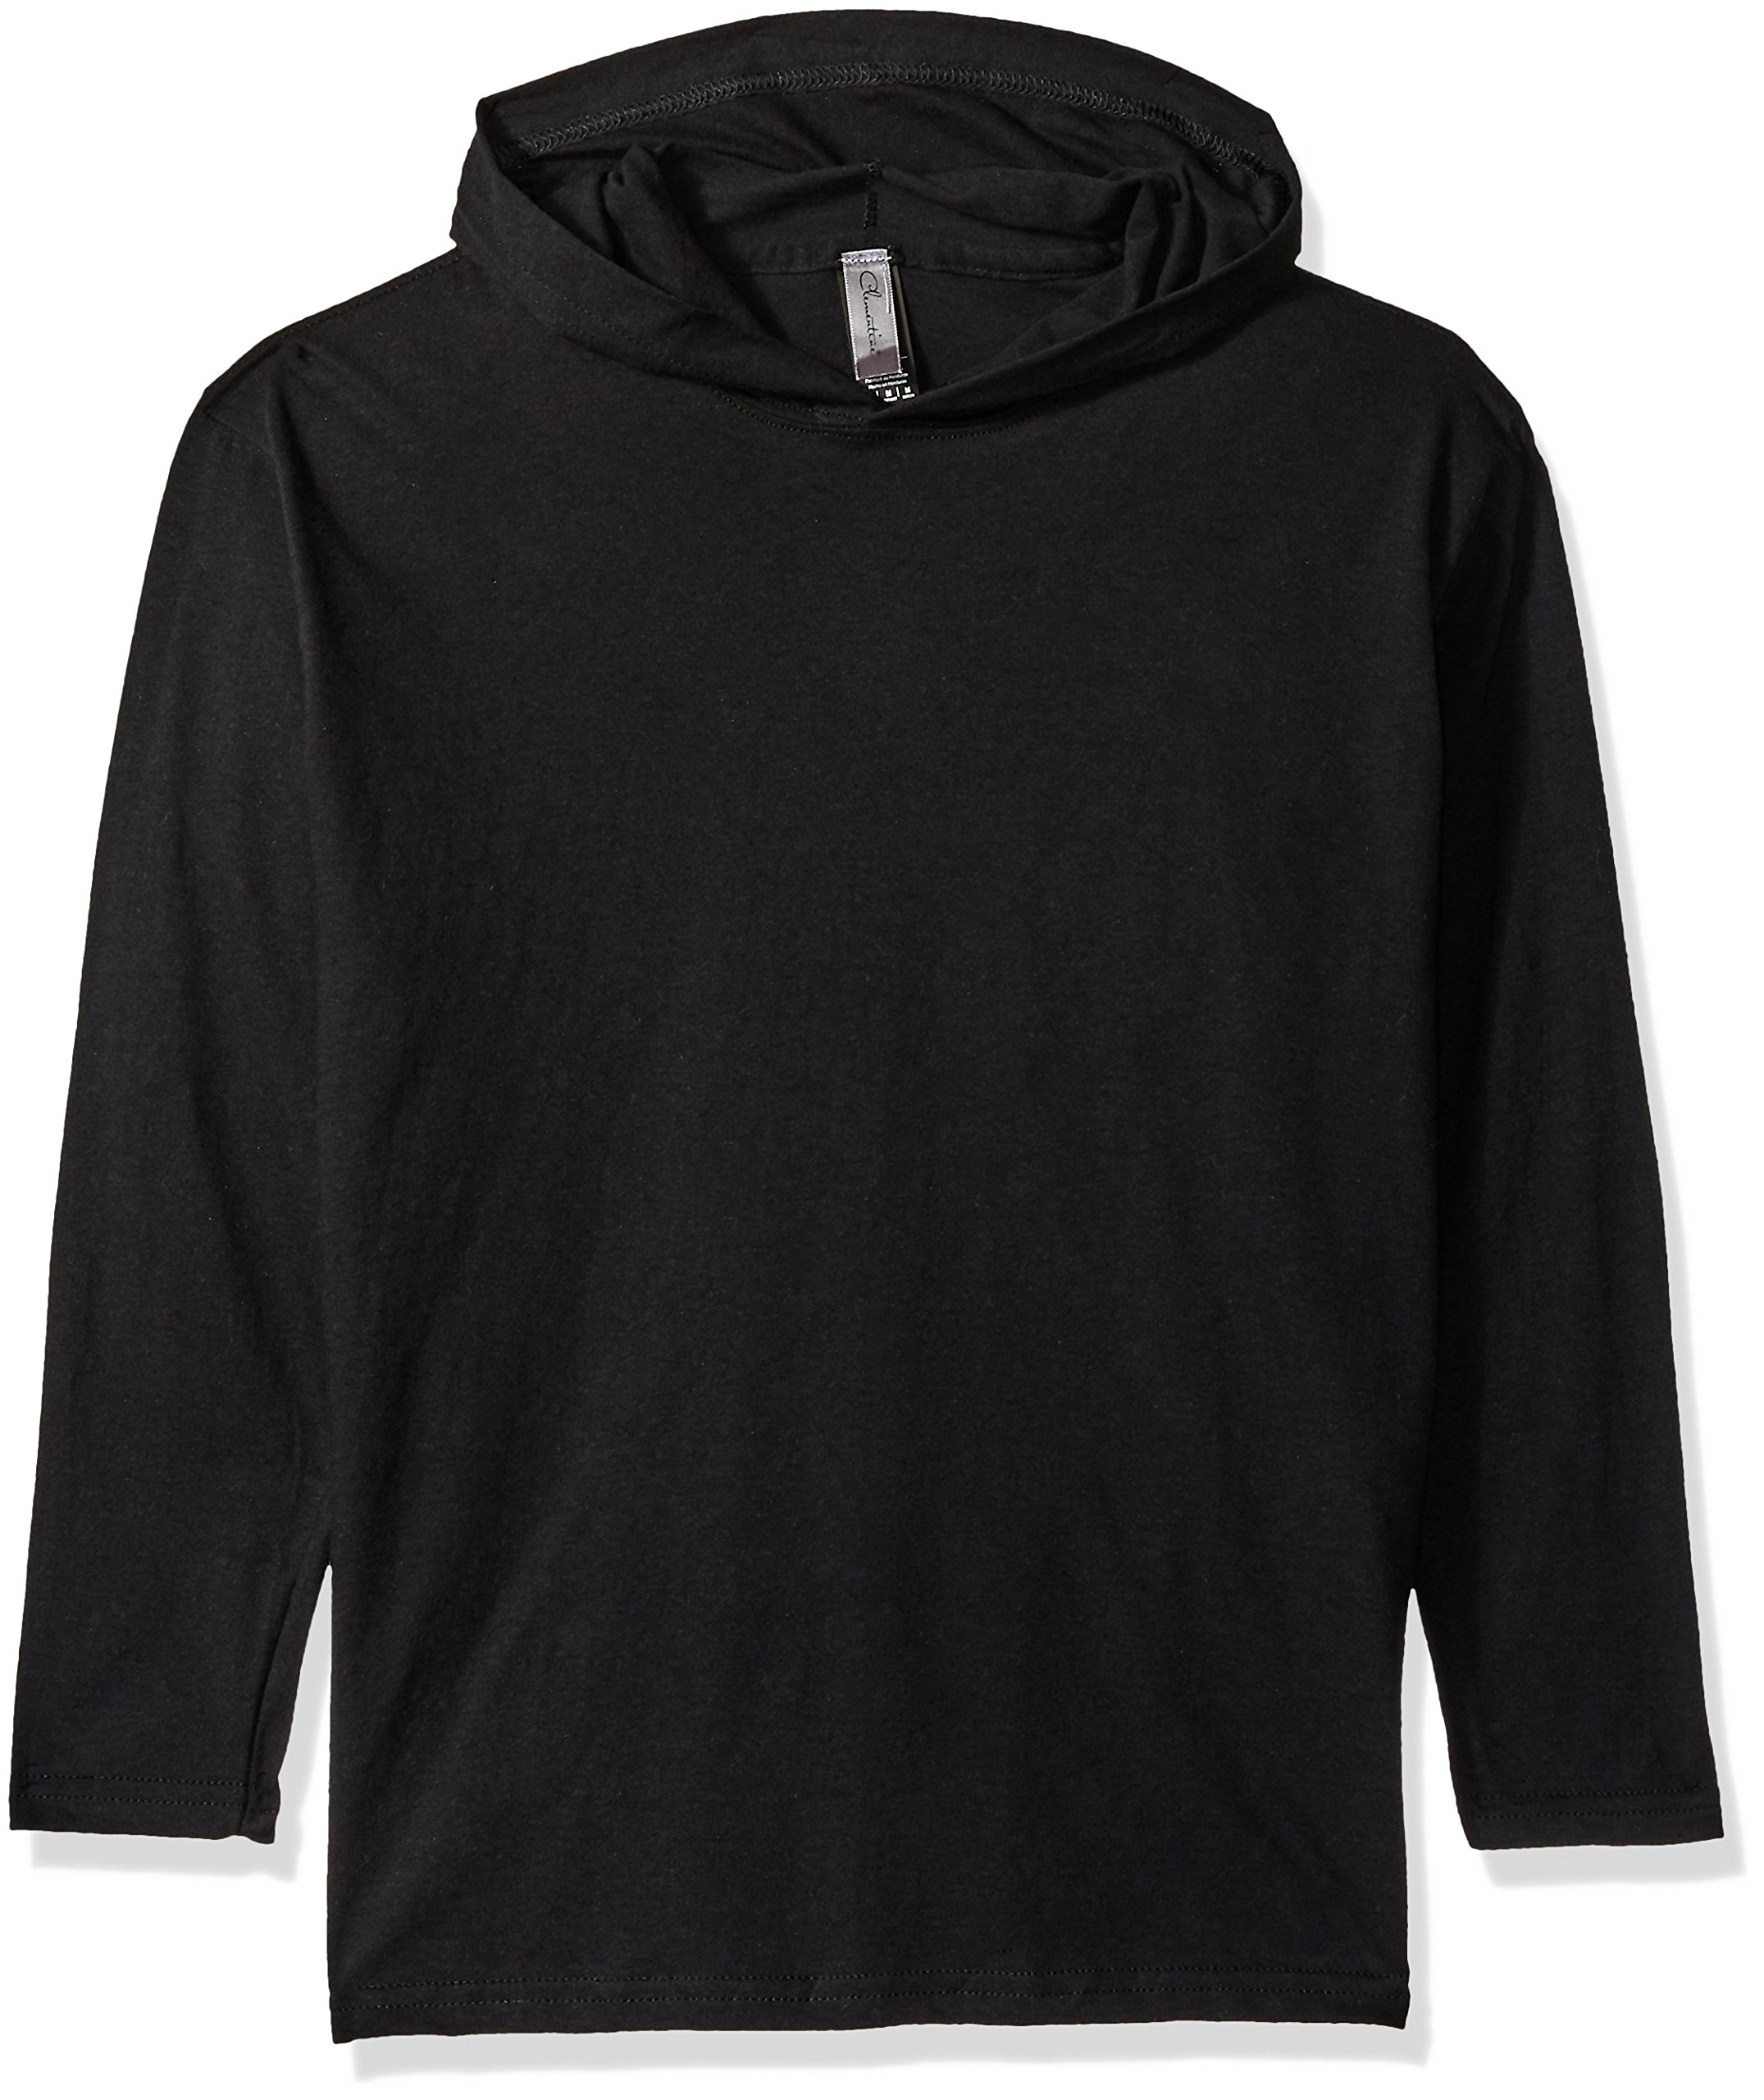 Clementine Big Girls' Youth Soft and Light Long-Sleeve HoodedT-Shirt, Black, M